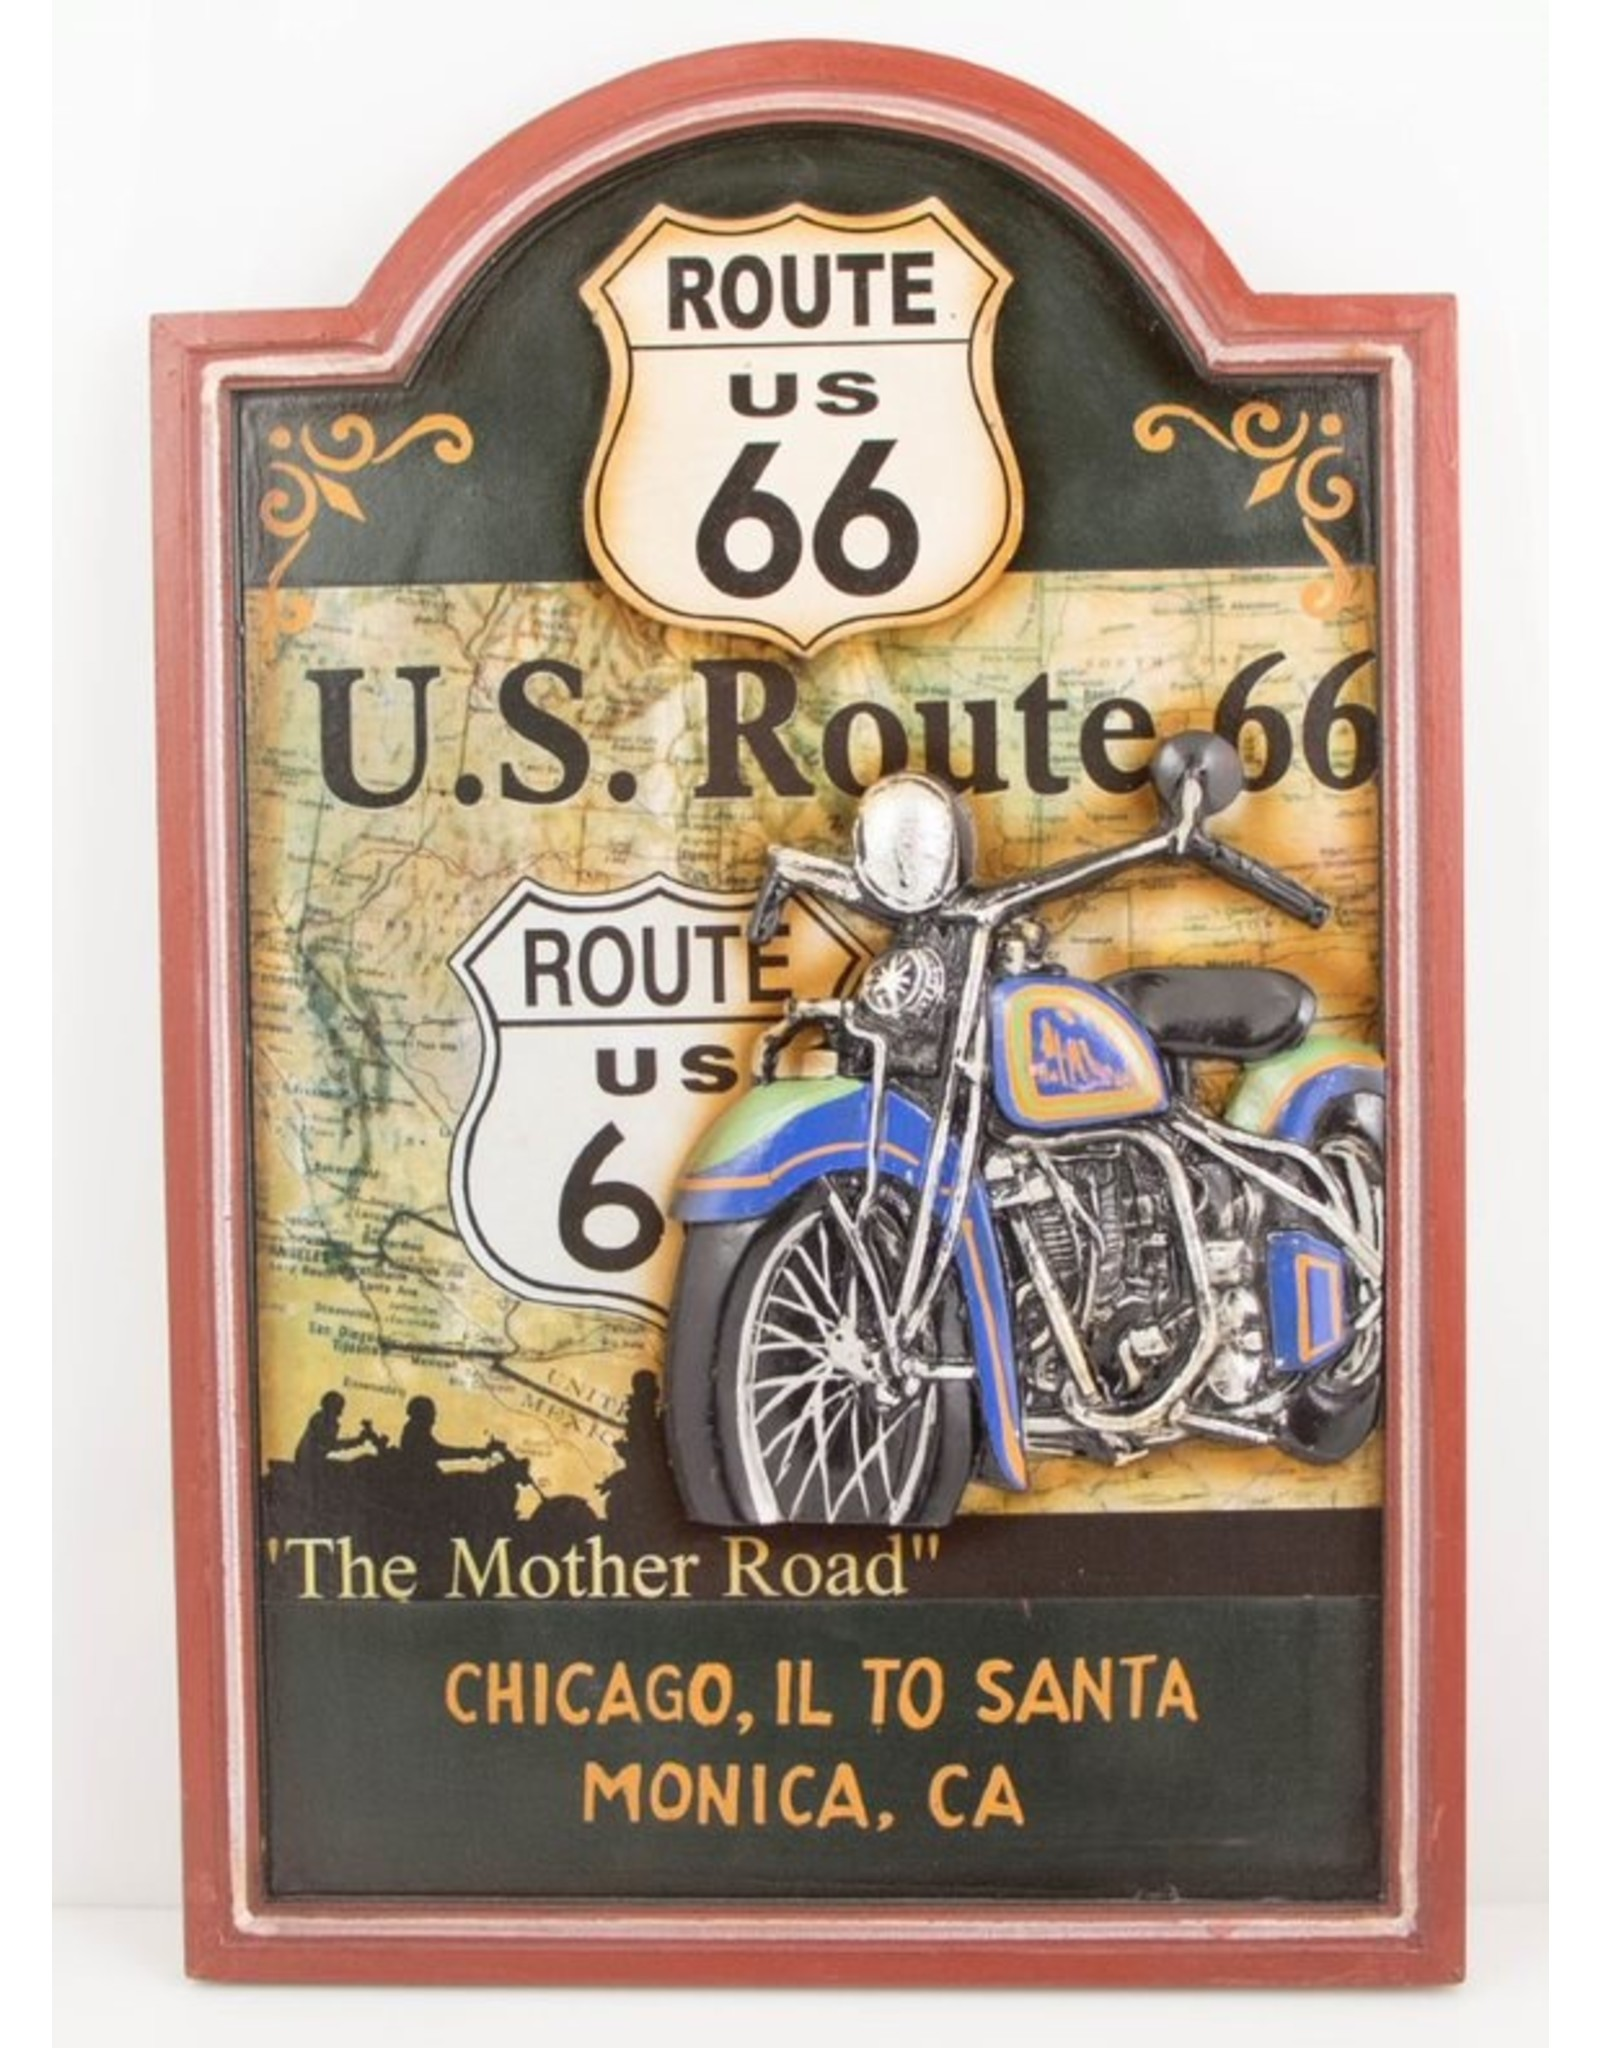 US route 66